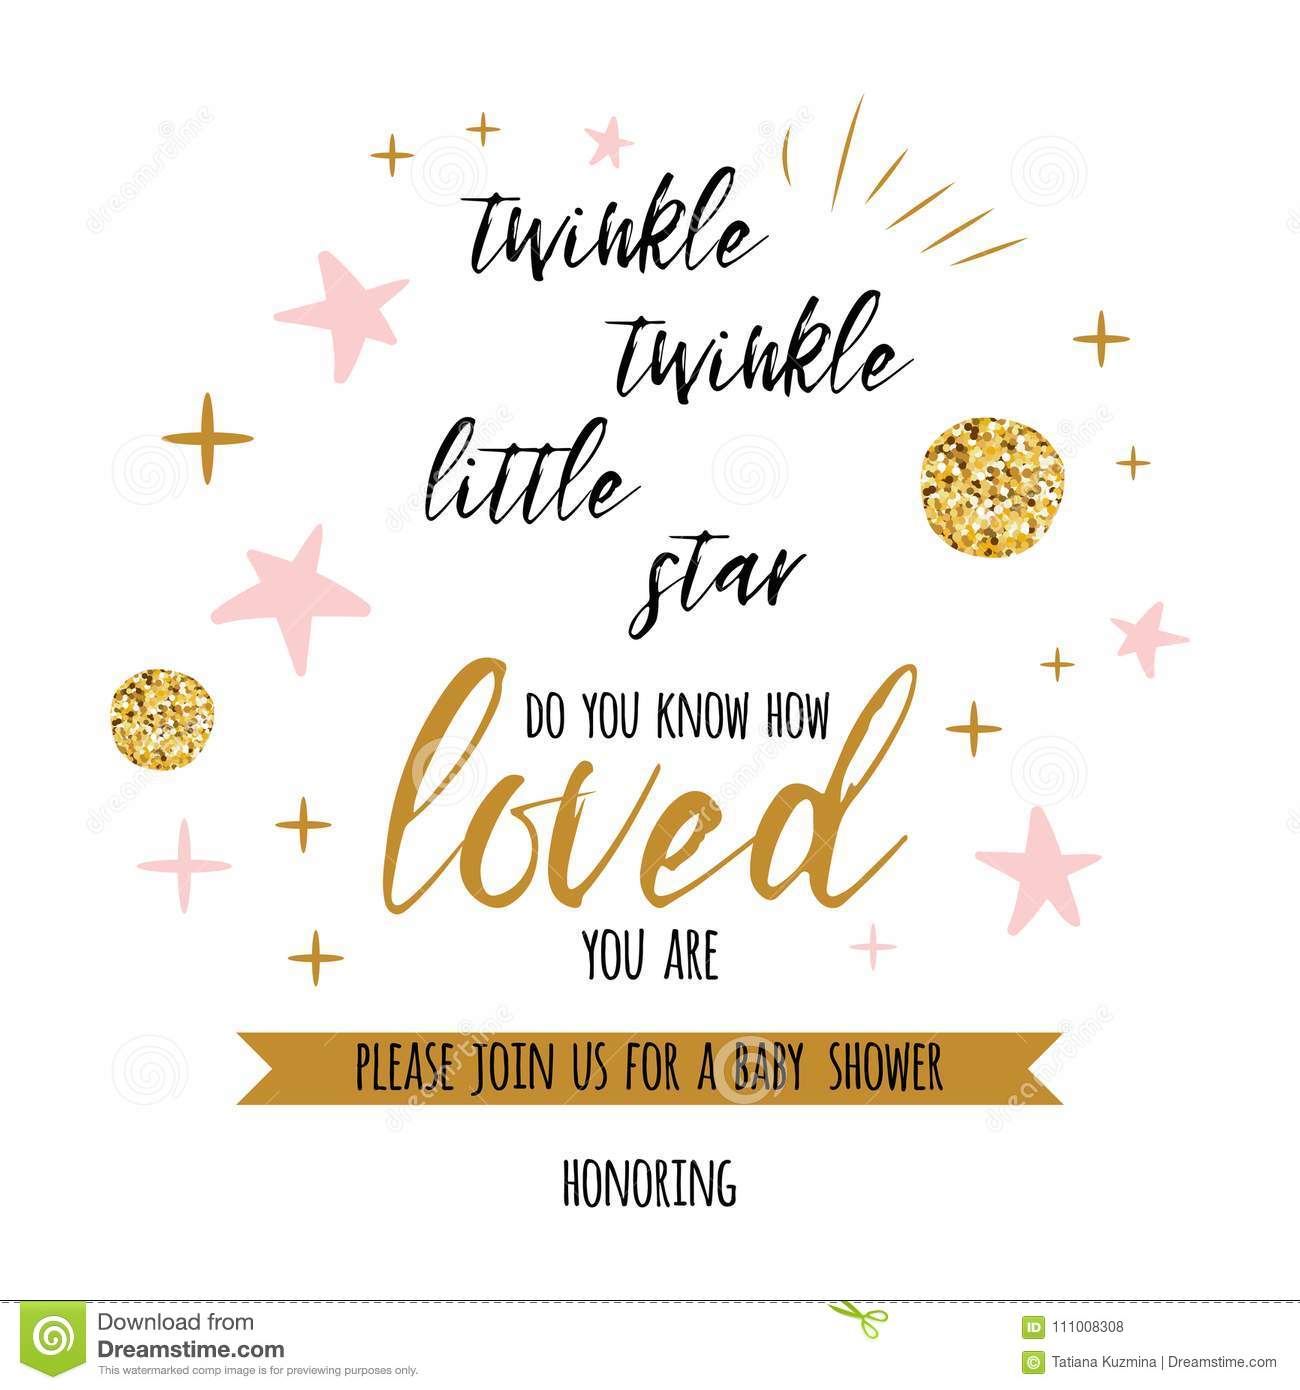 Twinkle Twinkle Little Star Text With Golden Oranment And Pink Star For Girl Baby Shower Card Template Stock Vector Illustration Of Bedtime Card 111008308